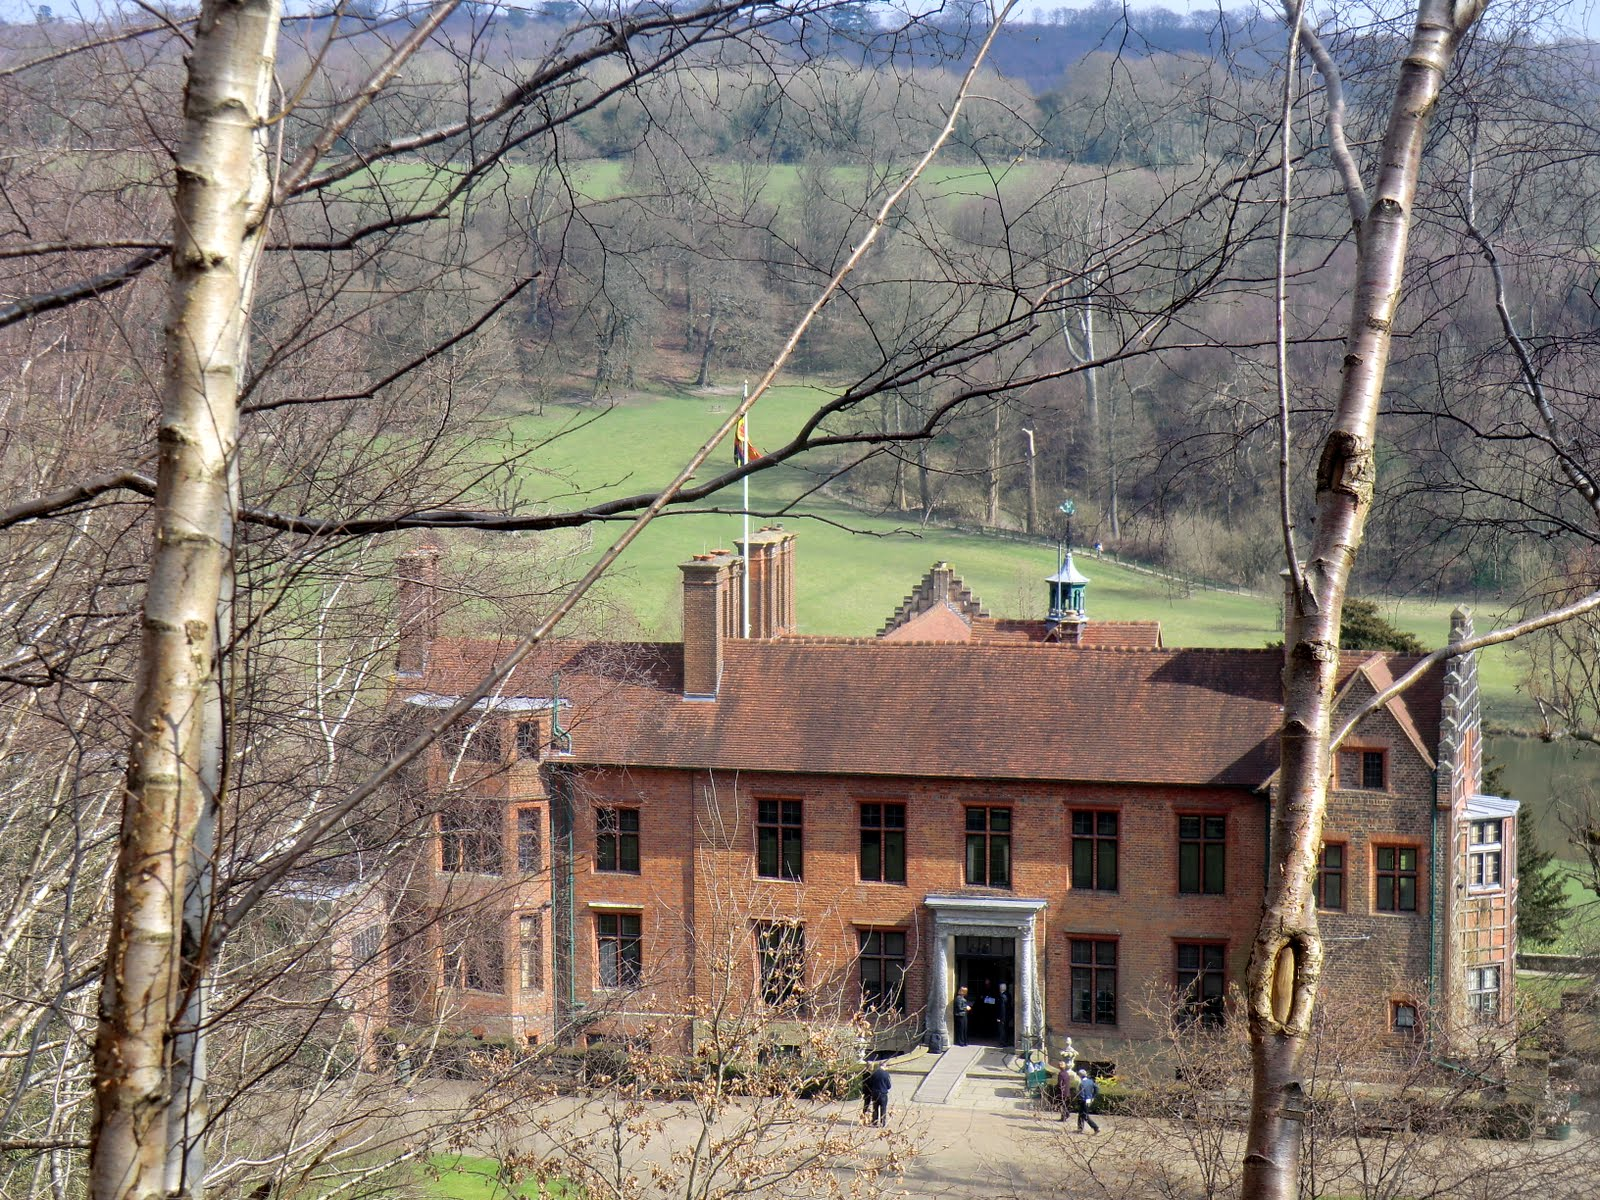 CIMG2921 First glimpse of Chartwell